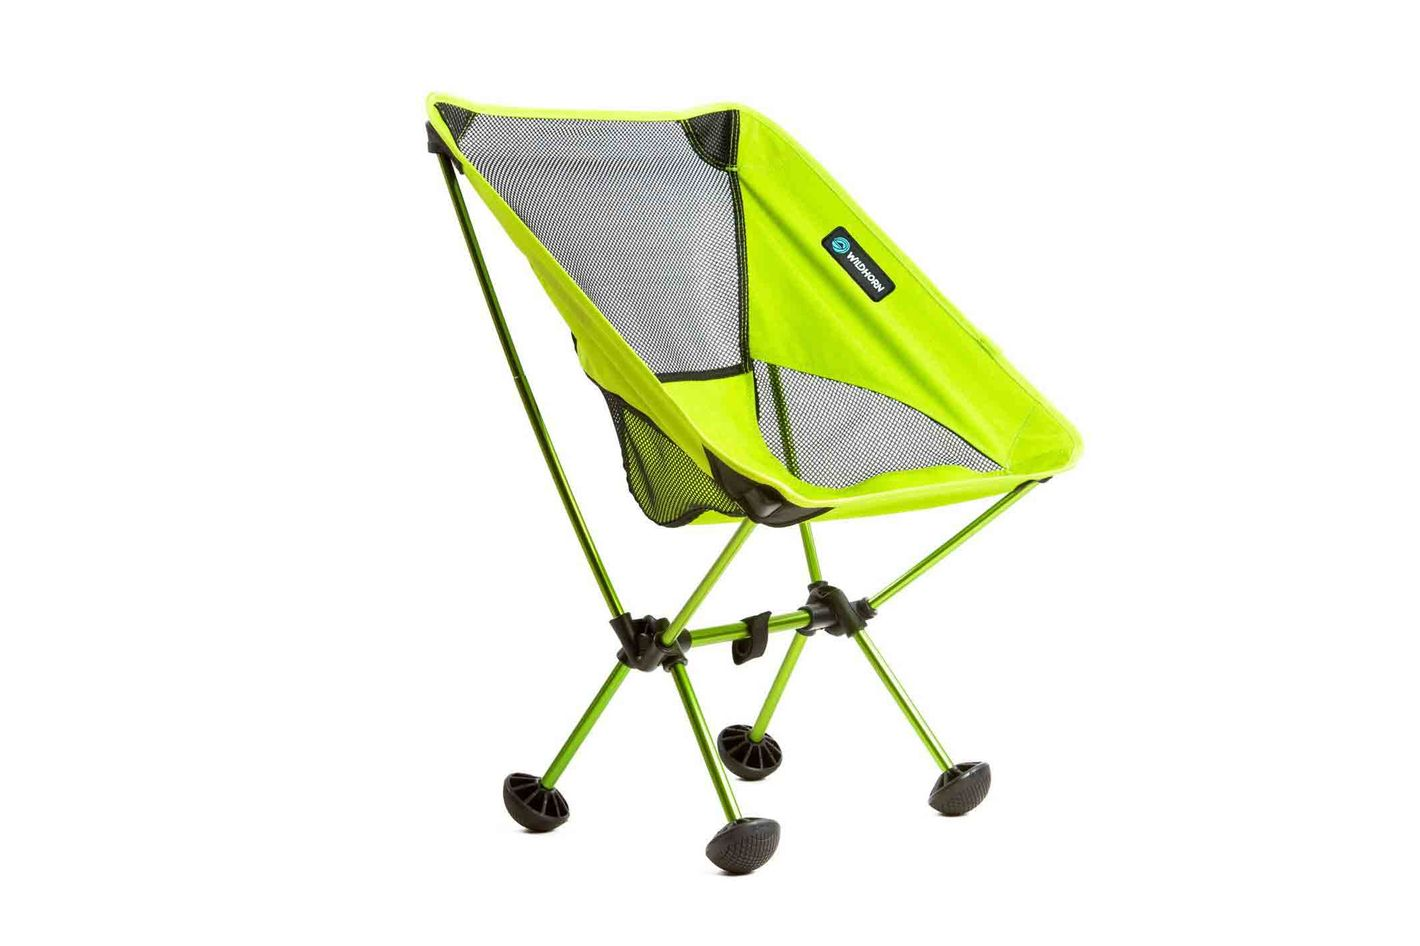 Terralite Portable Beach Chair